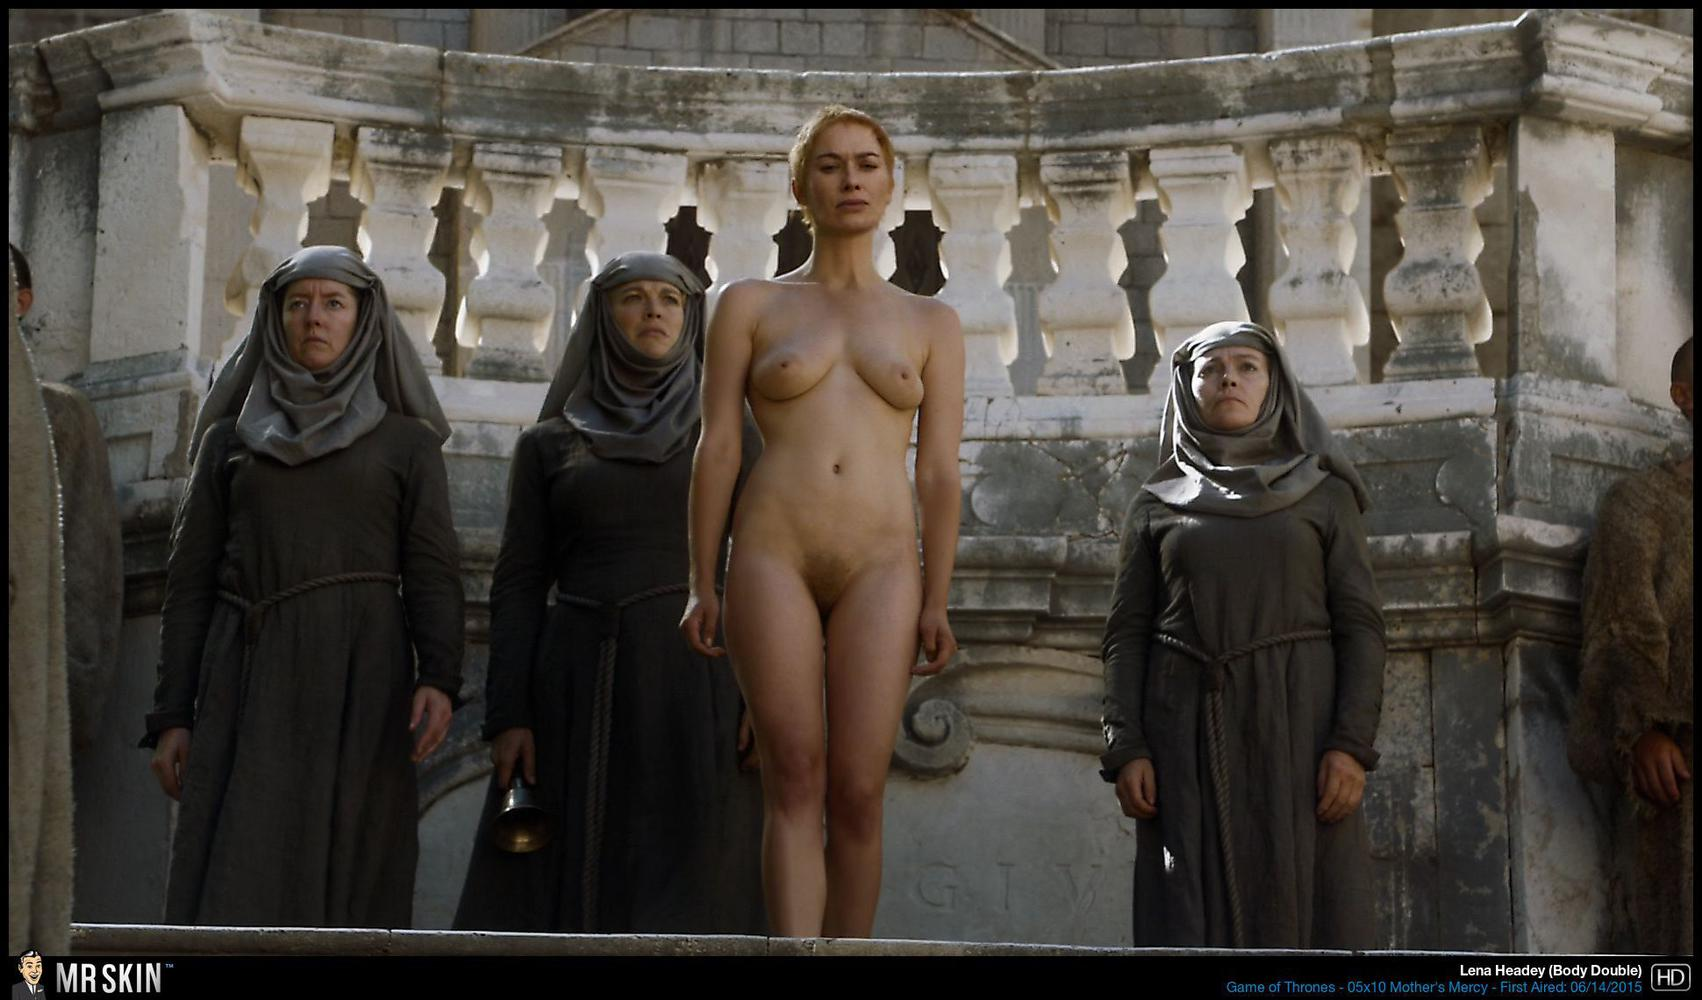 Game Of Thrones Nude Scense photo 7